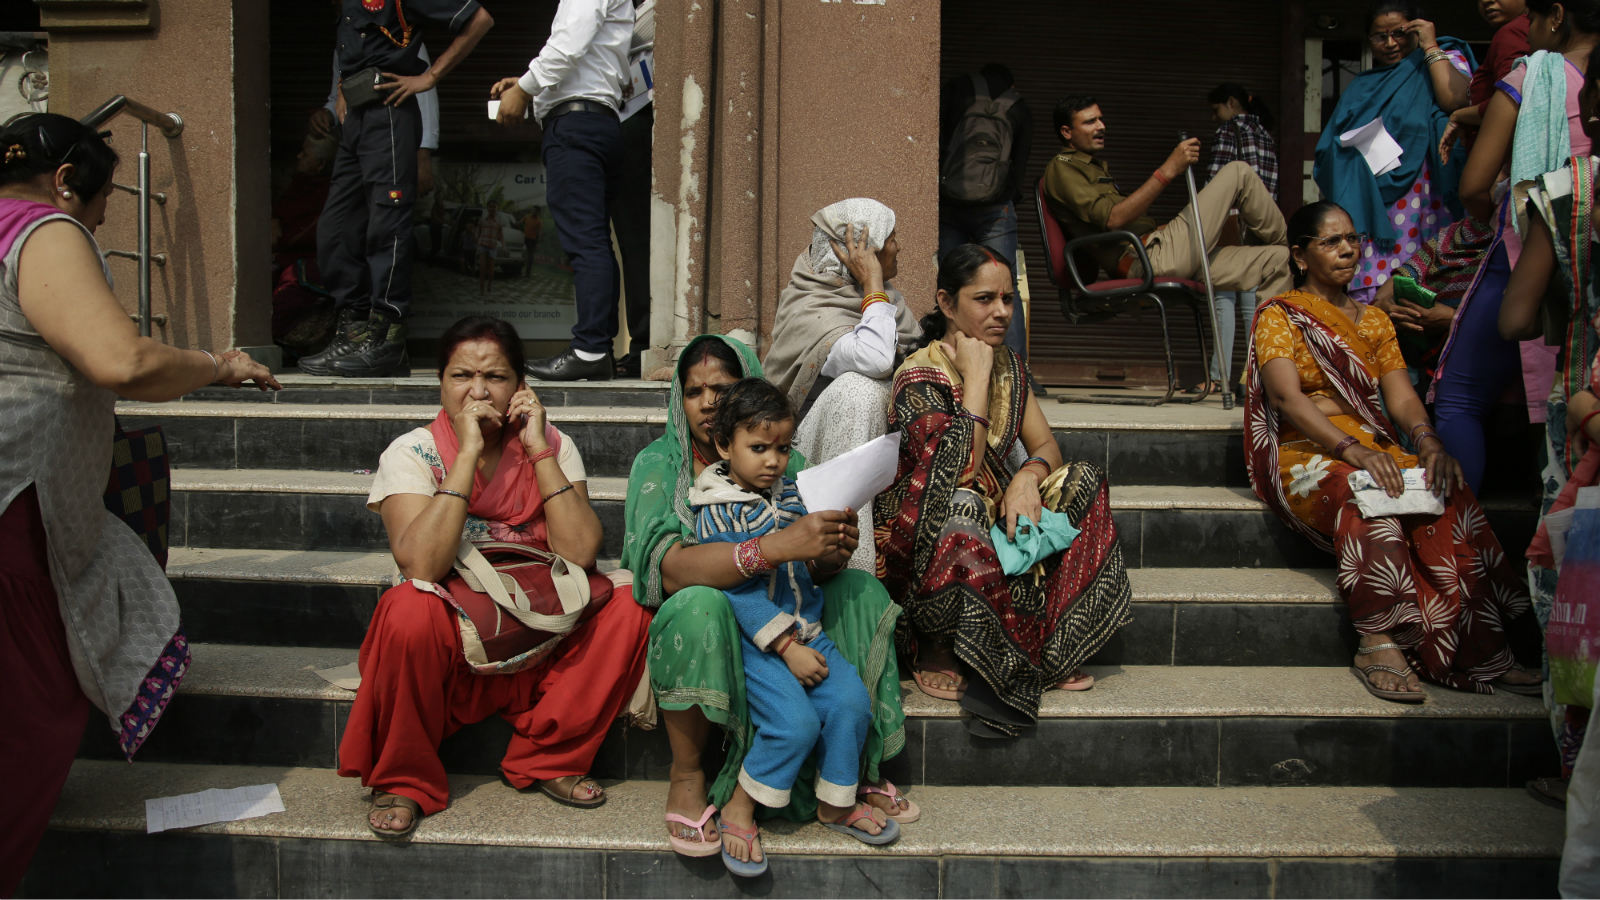 Indian women take rest on the stairs as others wait in a queue to deposit and exchange discontinued currency notes outside a bank on the outskirts of New Delhi, India, Friday, Nov. 11, 2016. Delivering one of India's biggest-ever economic upsets, Prime Minister Narendra Modi this week declared the bulk of Indian currency notes no longer held any value and told anyone holding those bills to take them to banks to deposit or exchange them.